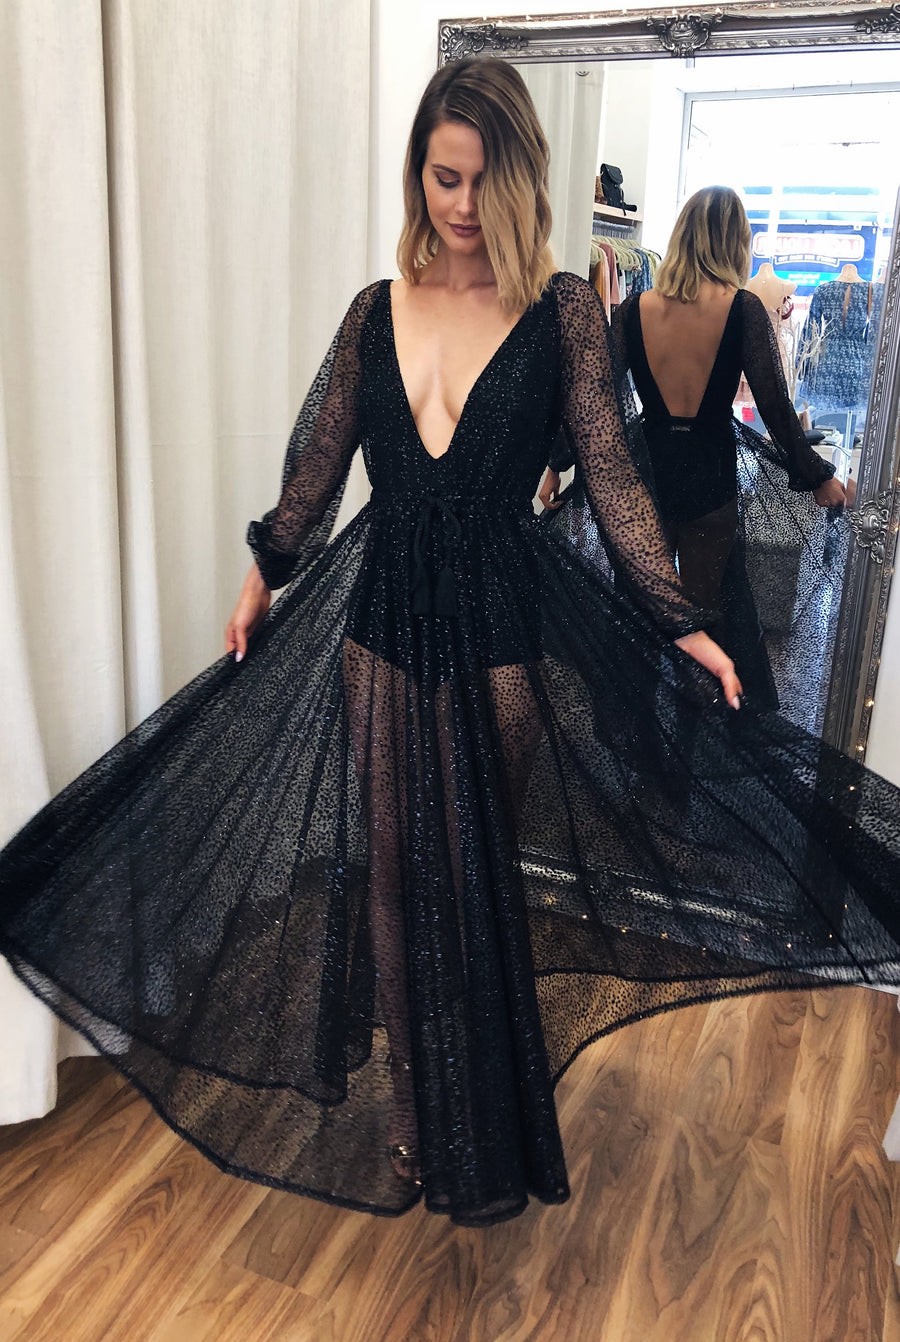 Nala Glitter Gown in Black for $149.00